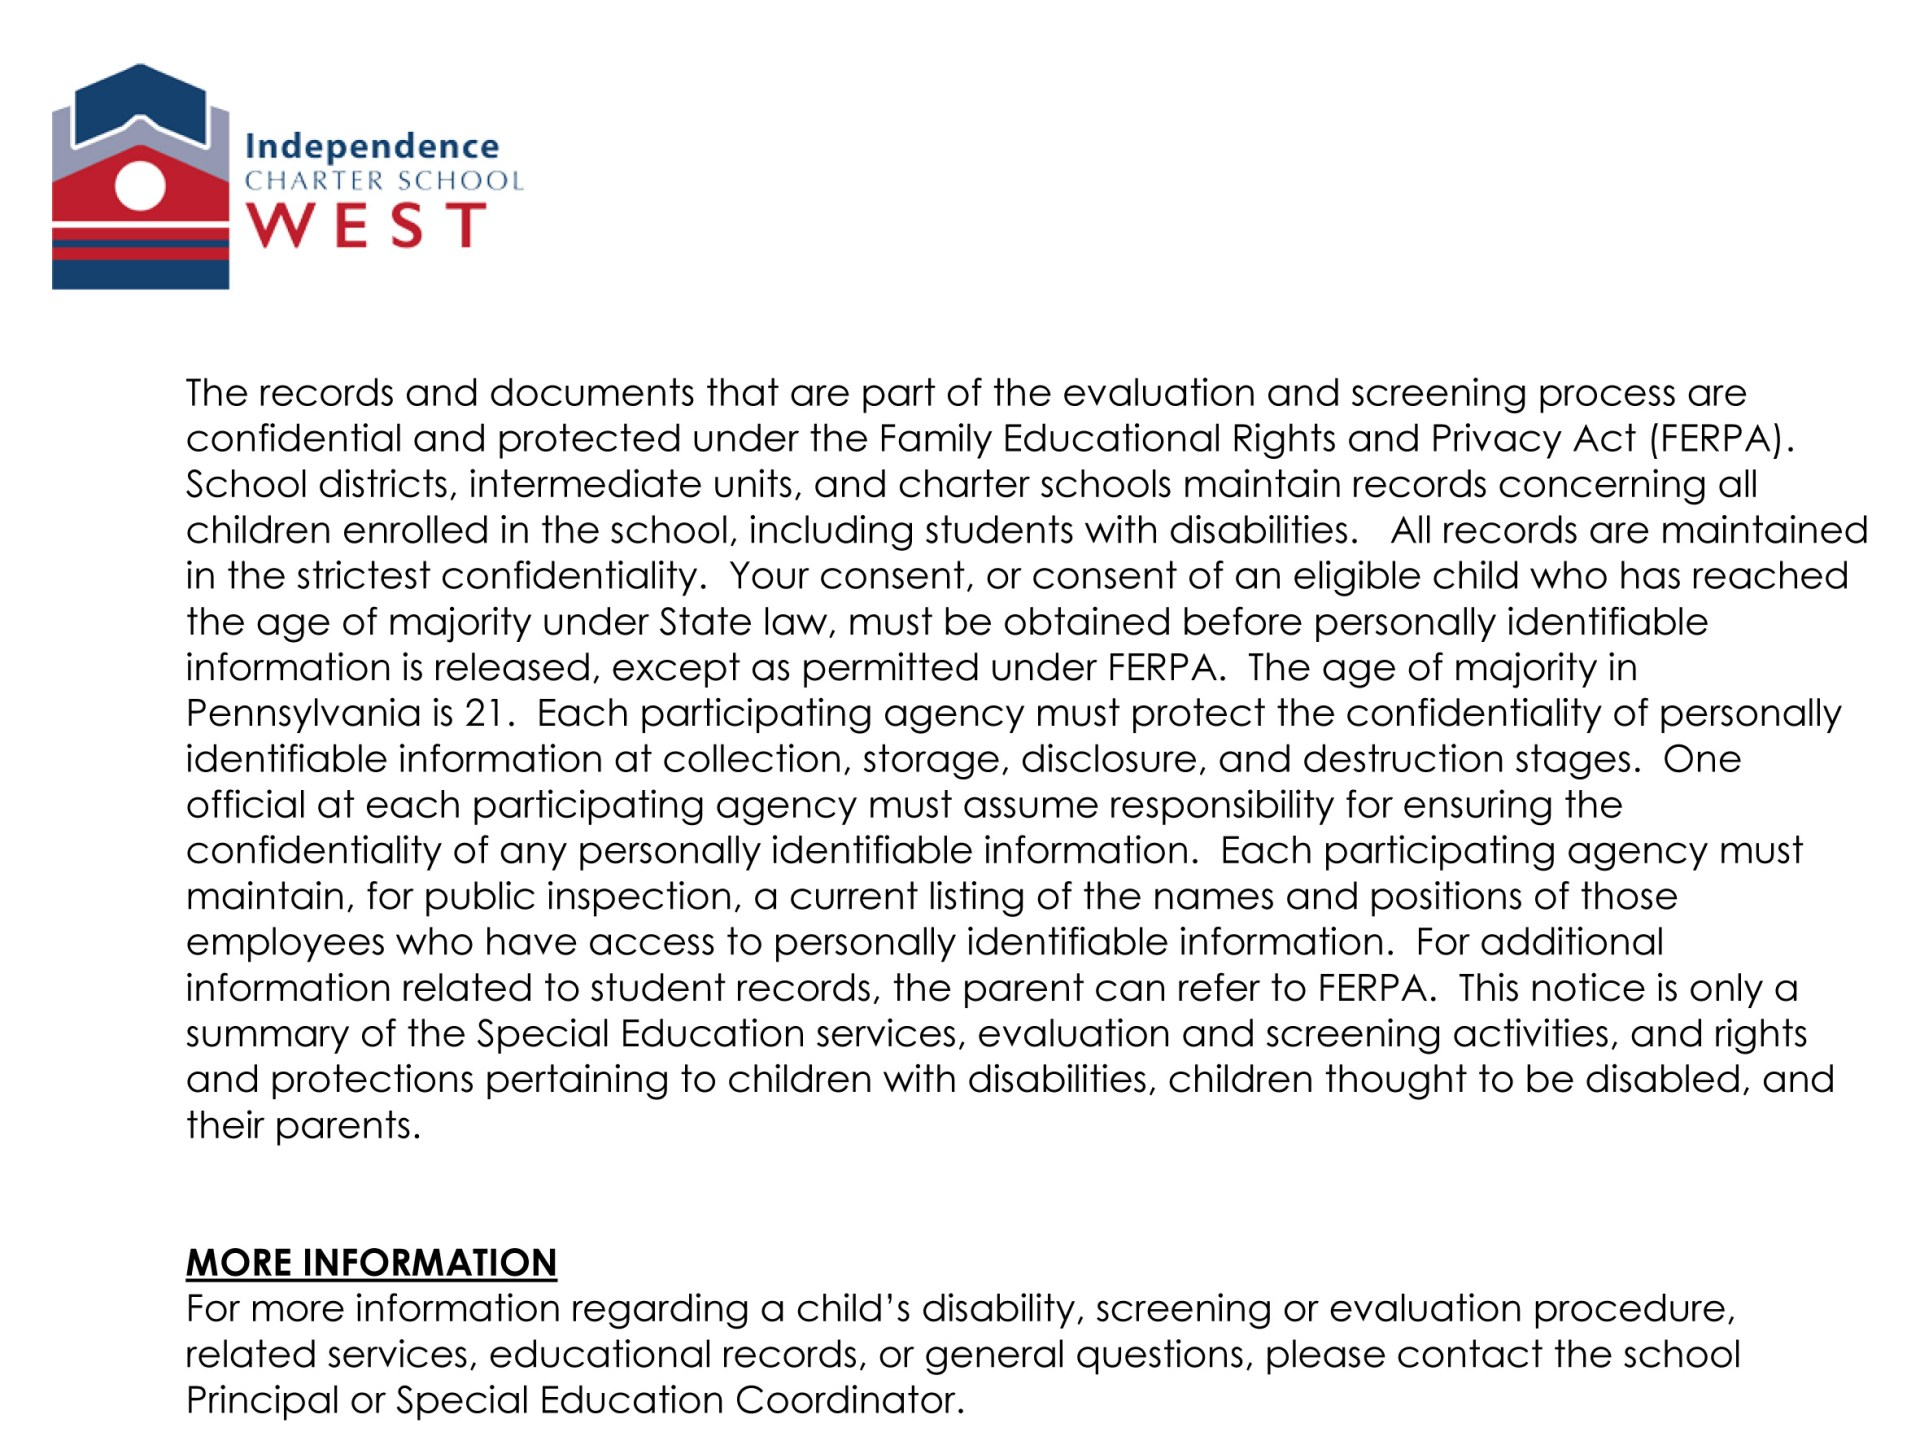 Annual Notice of Special Education Services